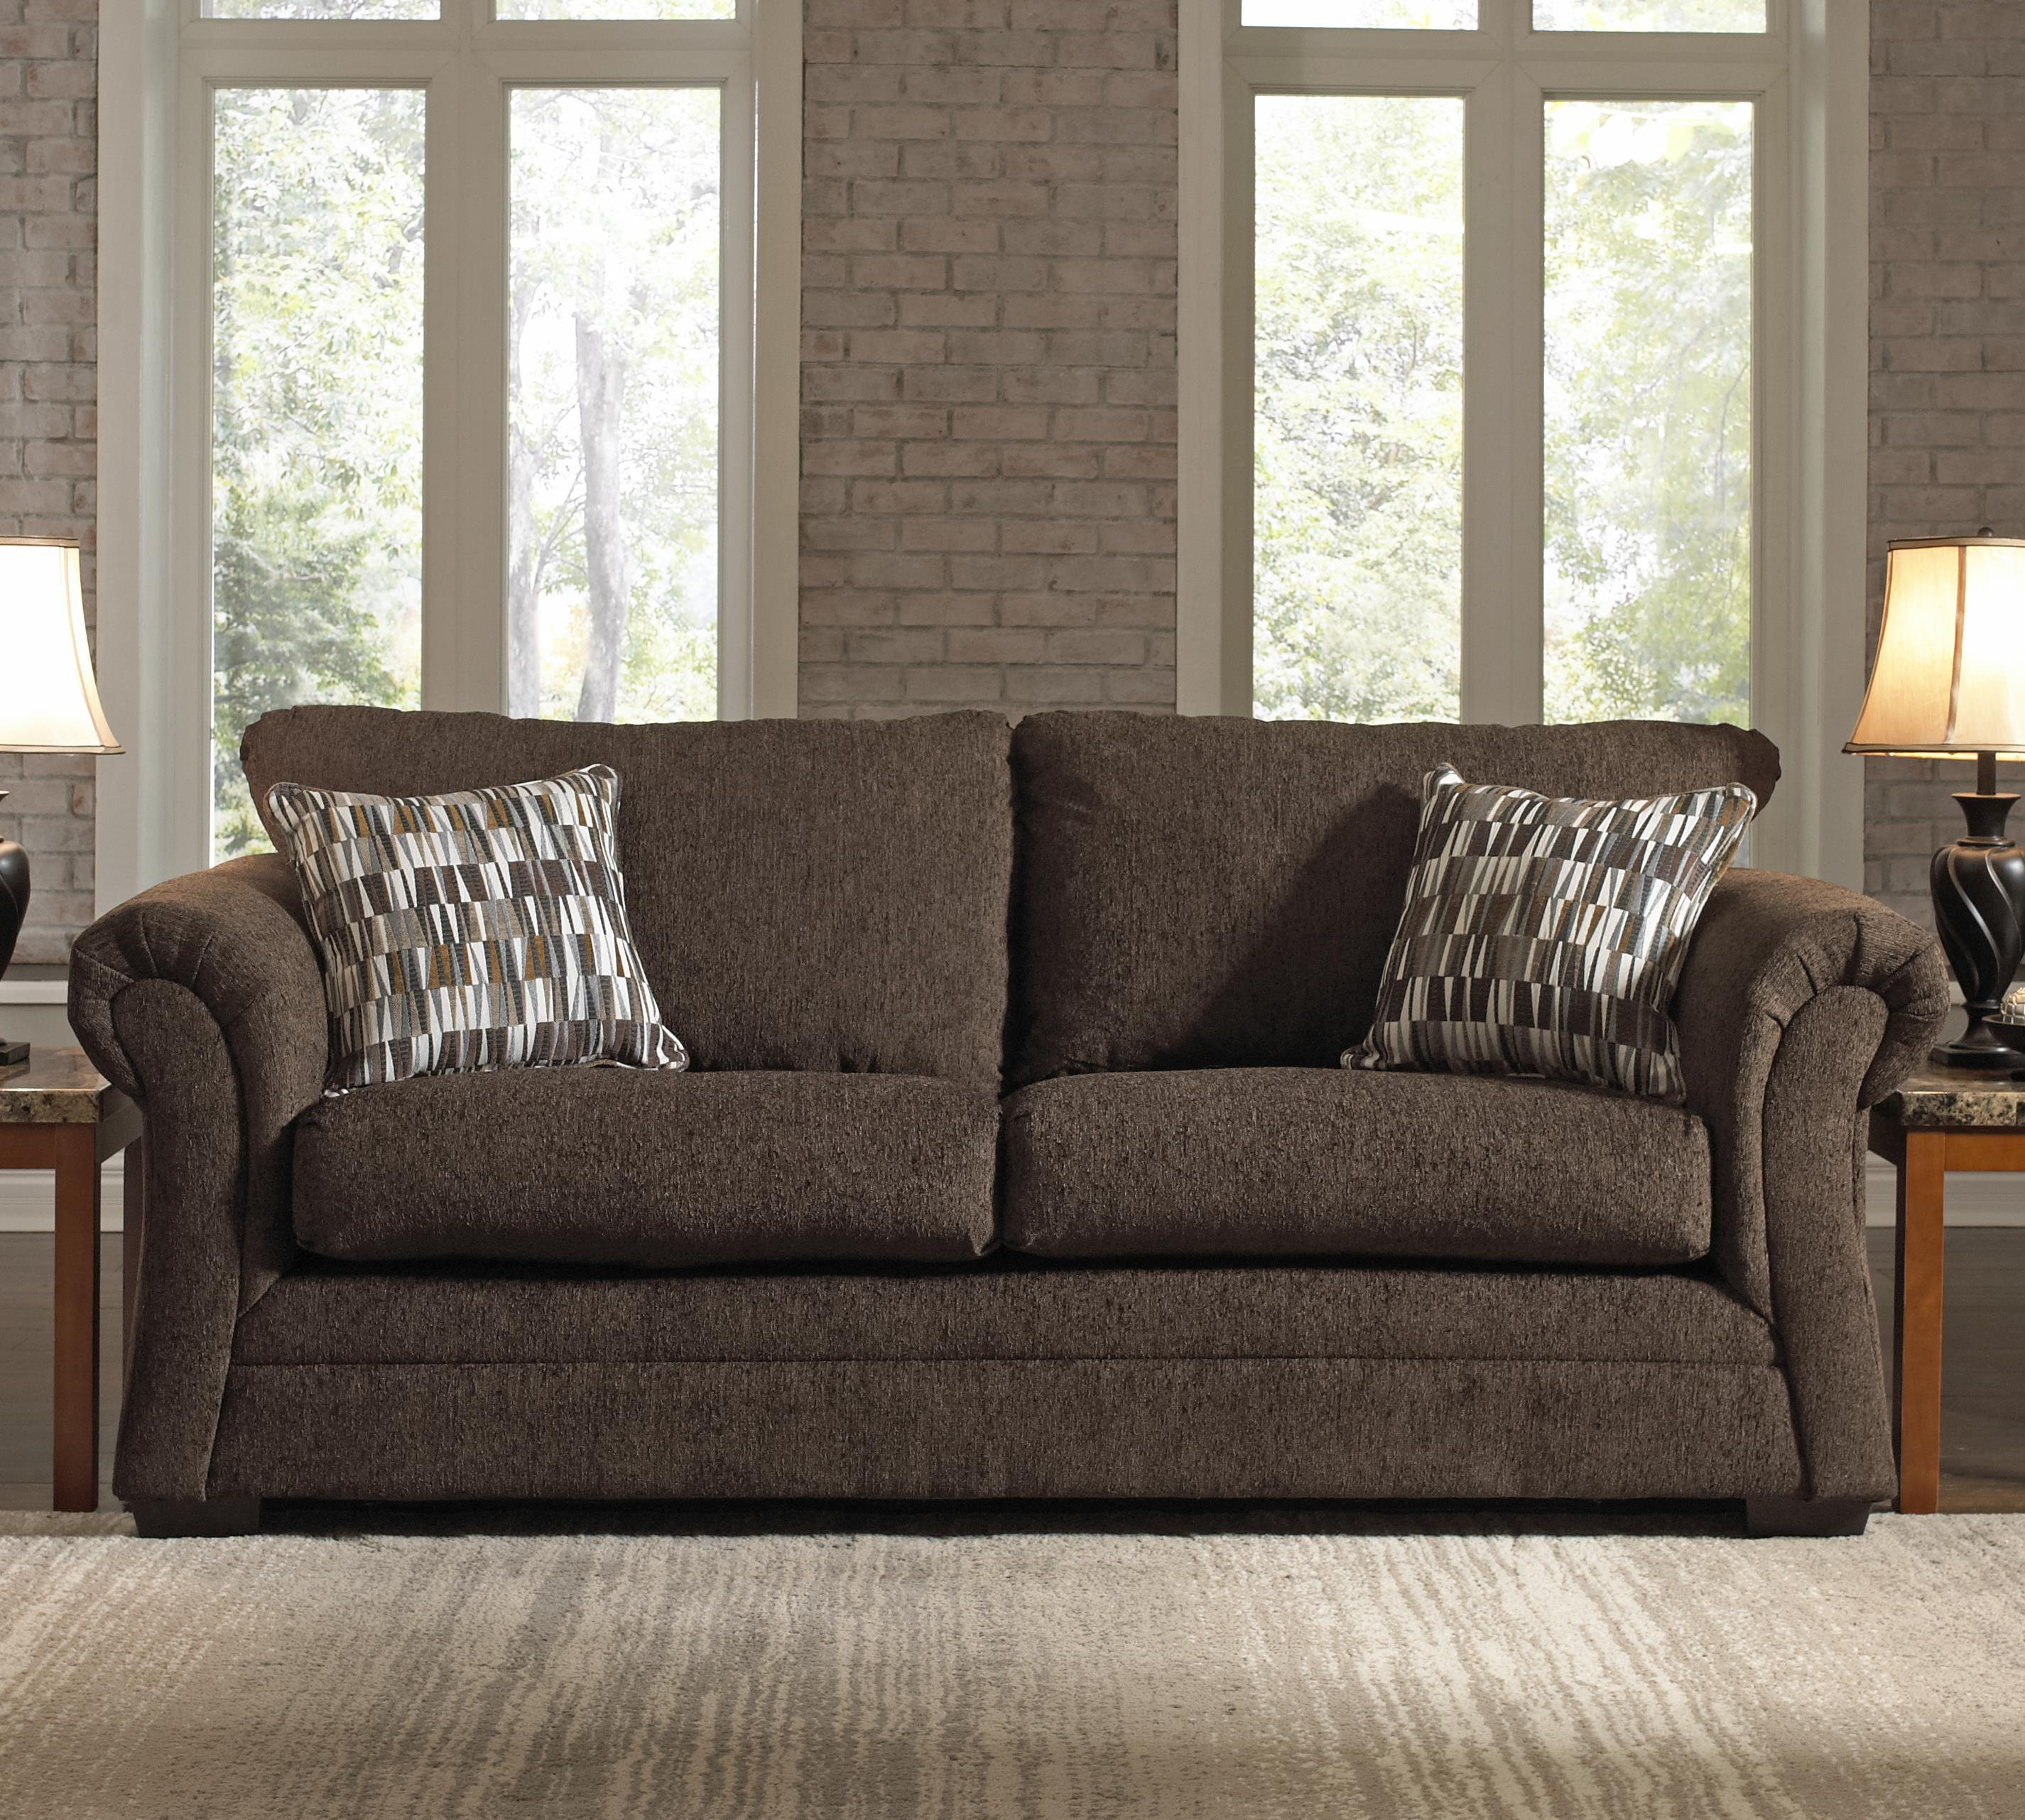 Lovely Simmons Upholstery 2256 Transitional Stationary Sofa   Item Number: 2256  Sofa Chocolate